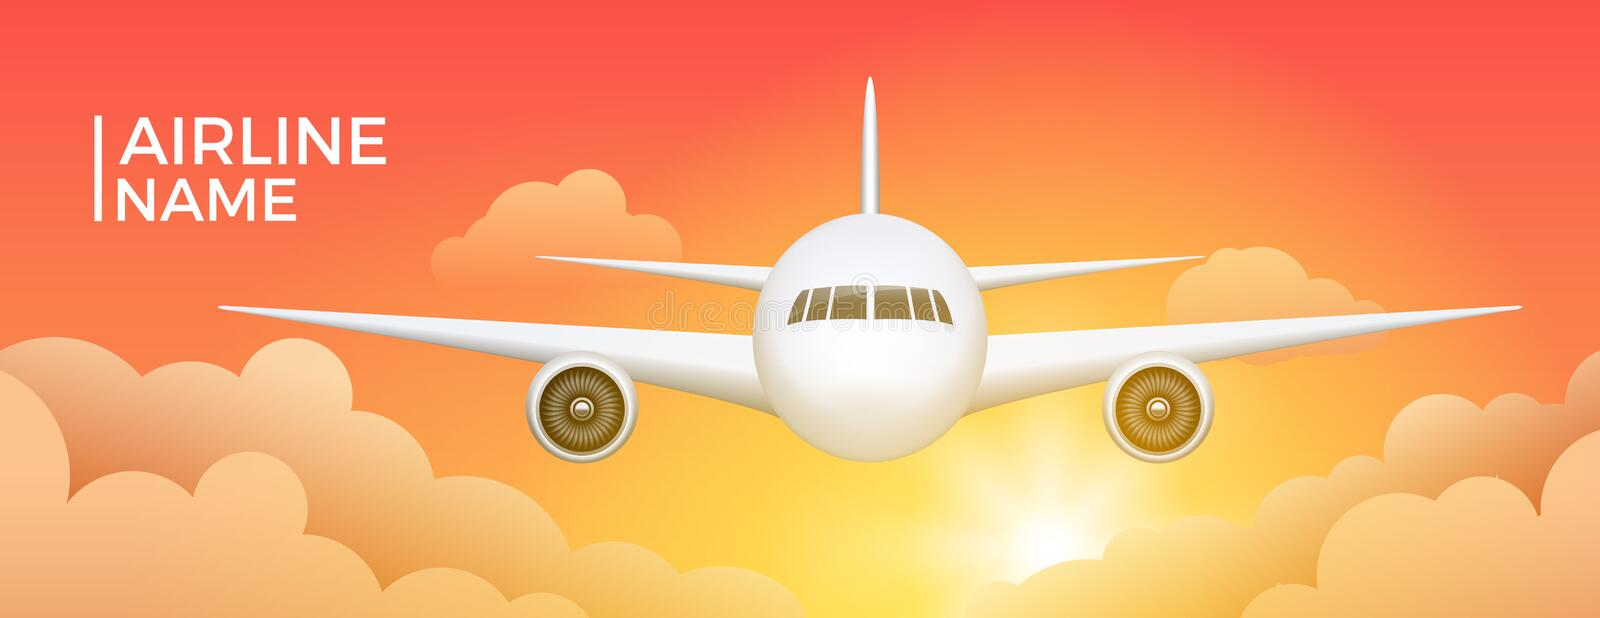 Airline banner with aircraft travel aviation background. Airplane flight sky tourism jet illustration poster stock illustration